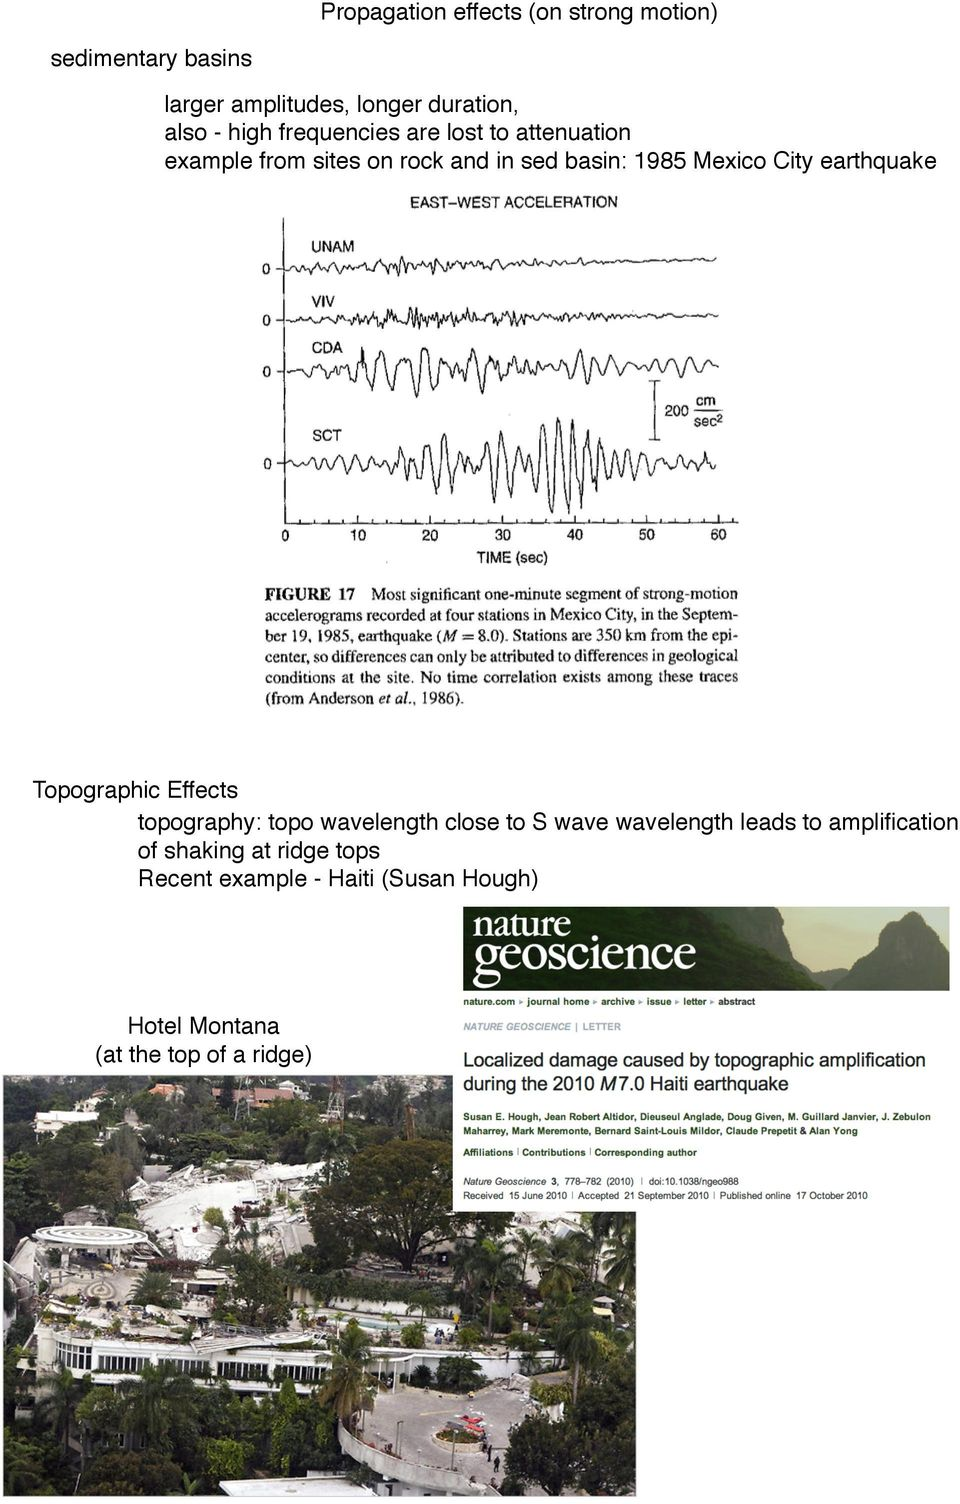 earthquake Page 950 Topographic Effects topography: topo wavelength close to S wave wavelength leads to